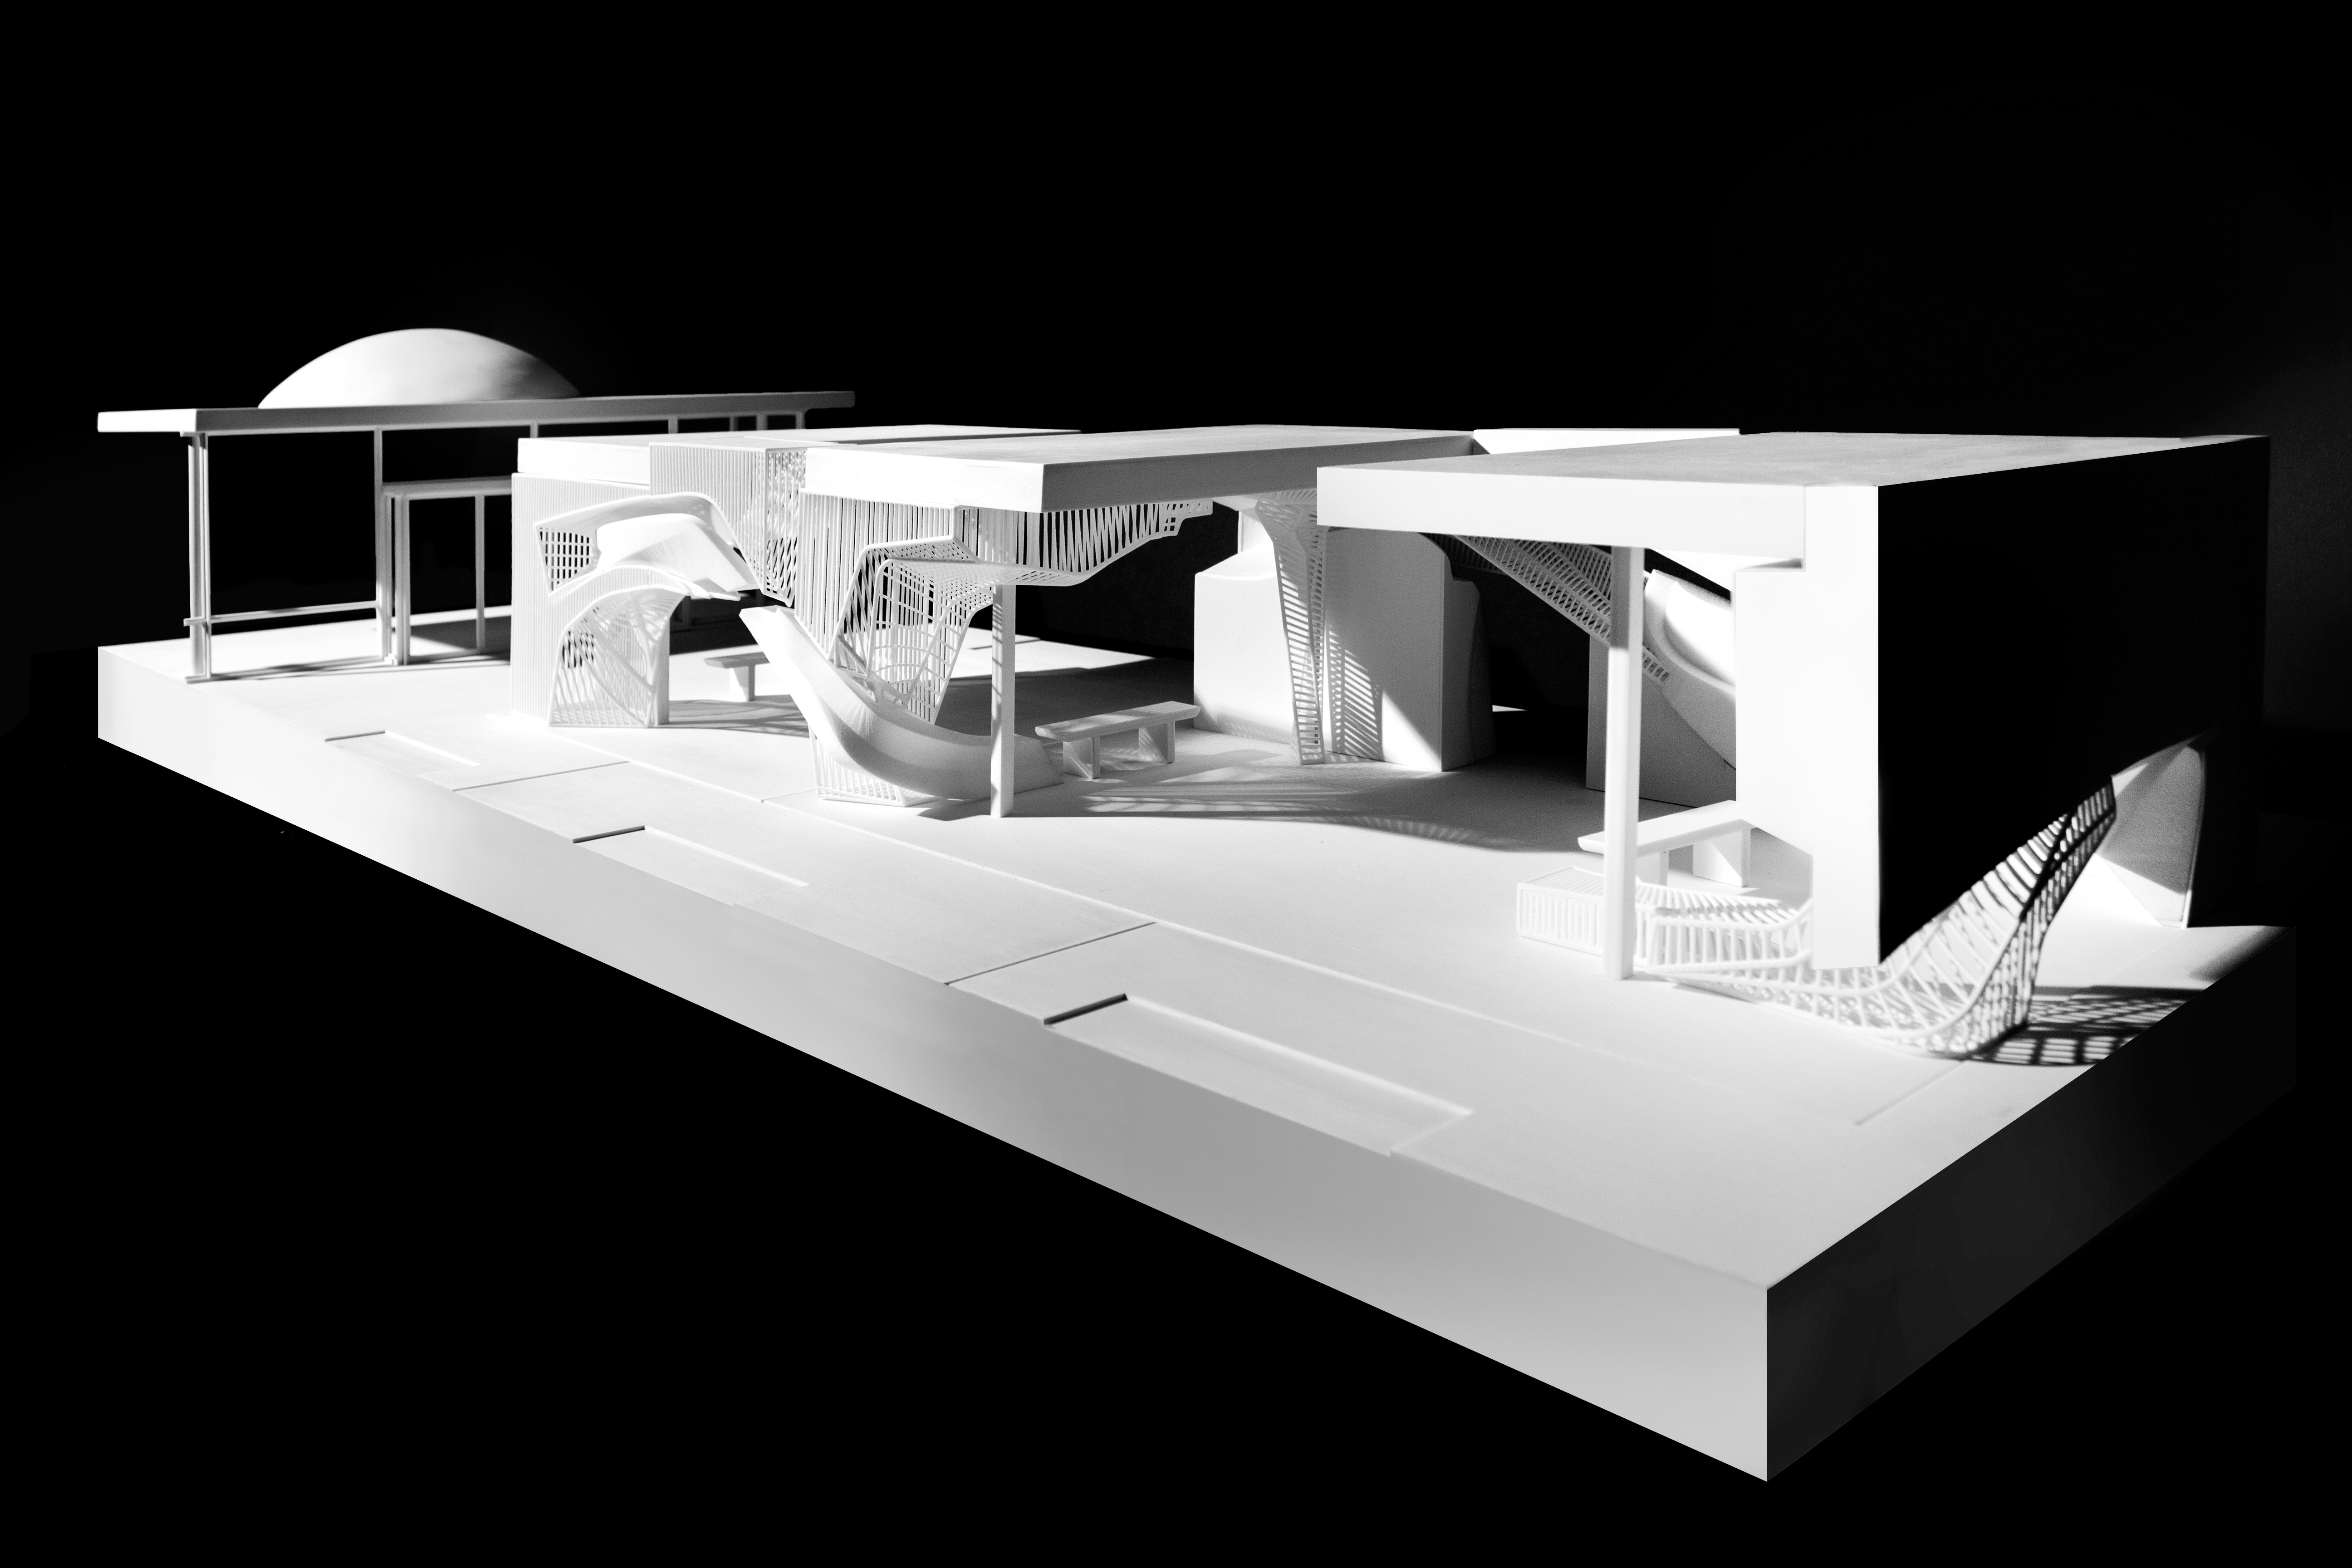 Sci Arc Faculty Oyler And Wu Win Miller Prize On Early